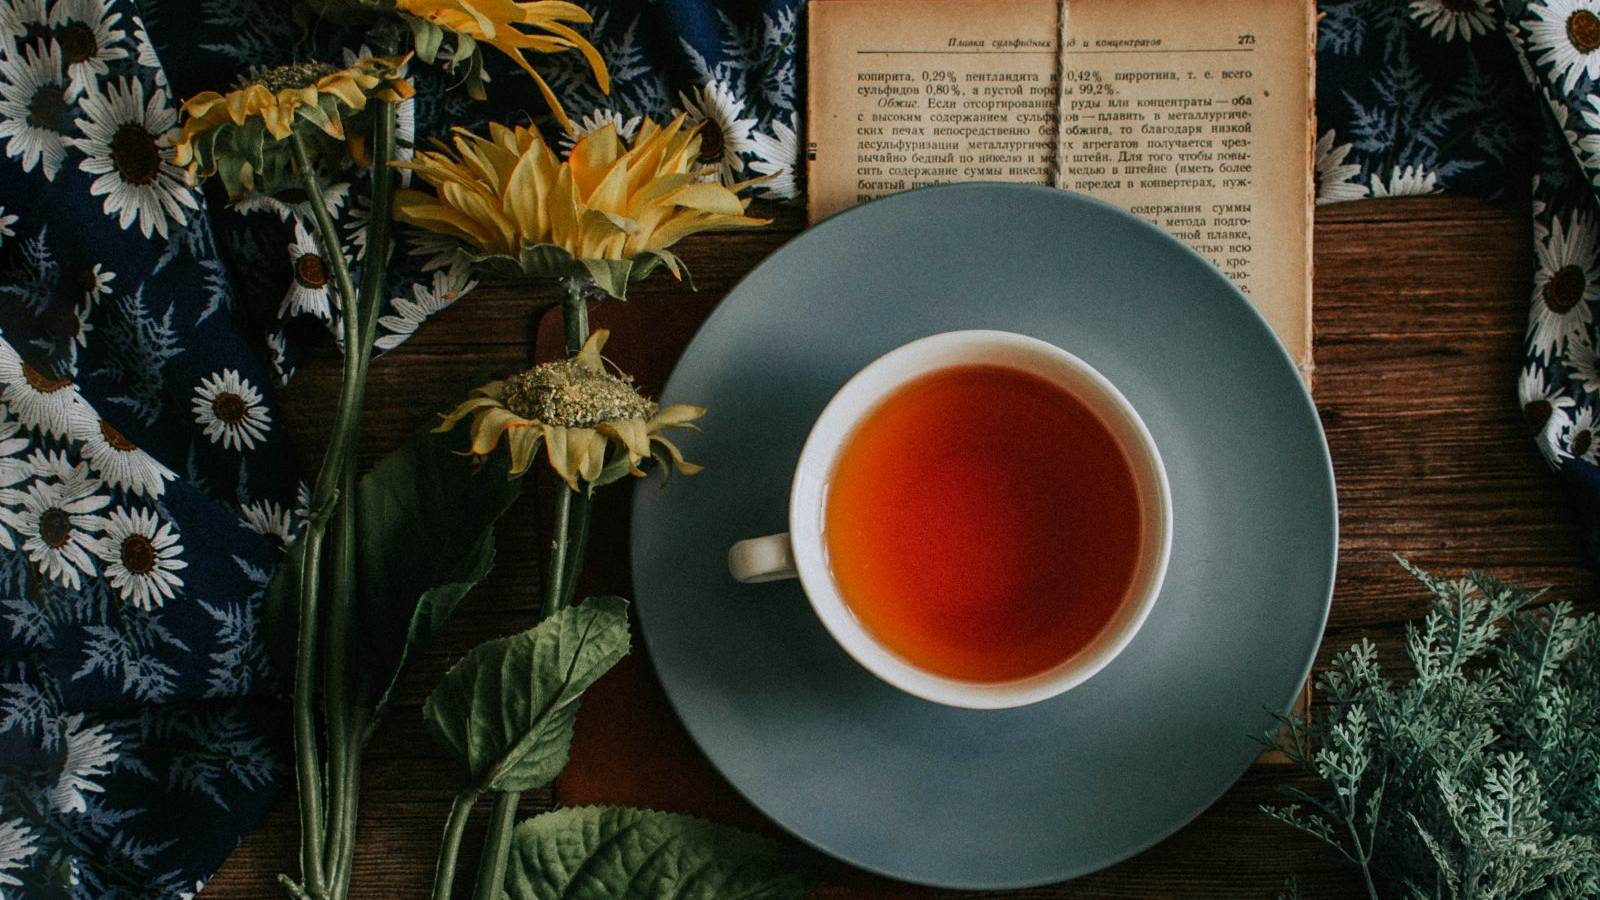 Scientists discover how to make a scum-free cup of tea